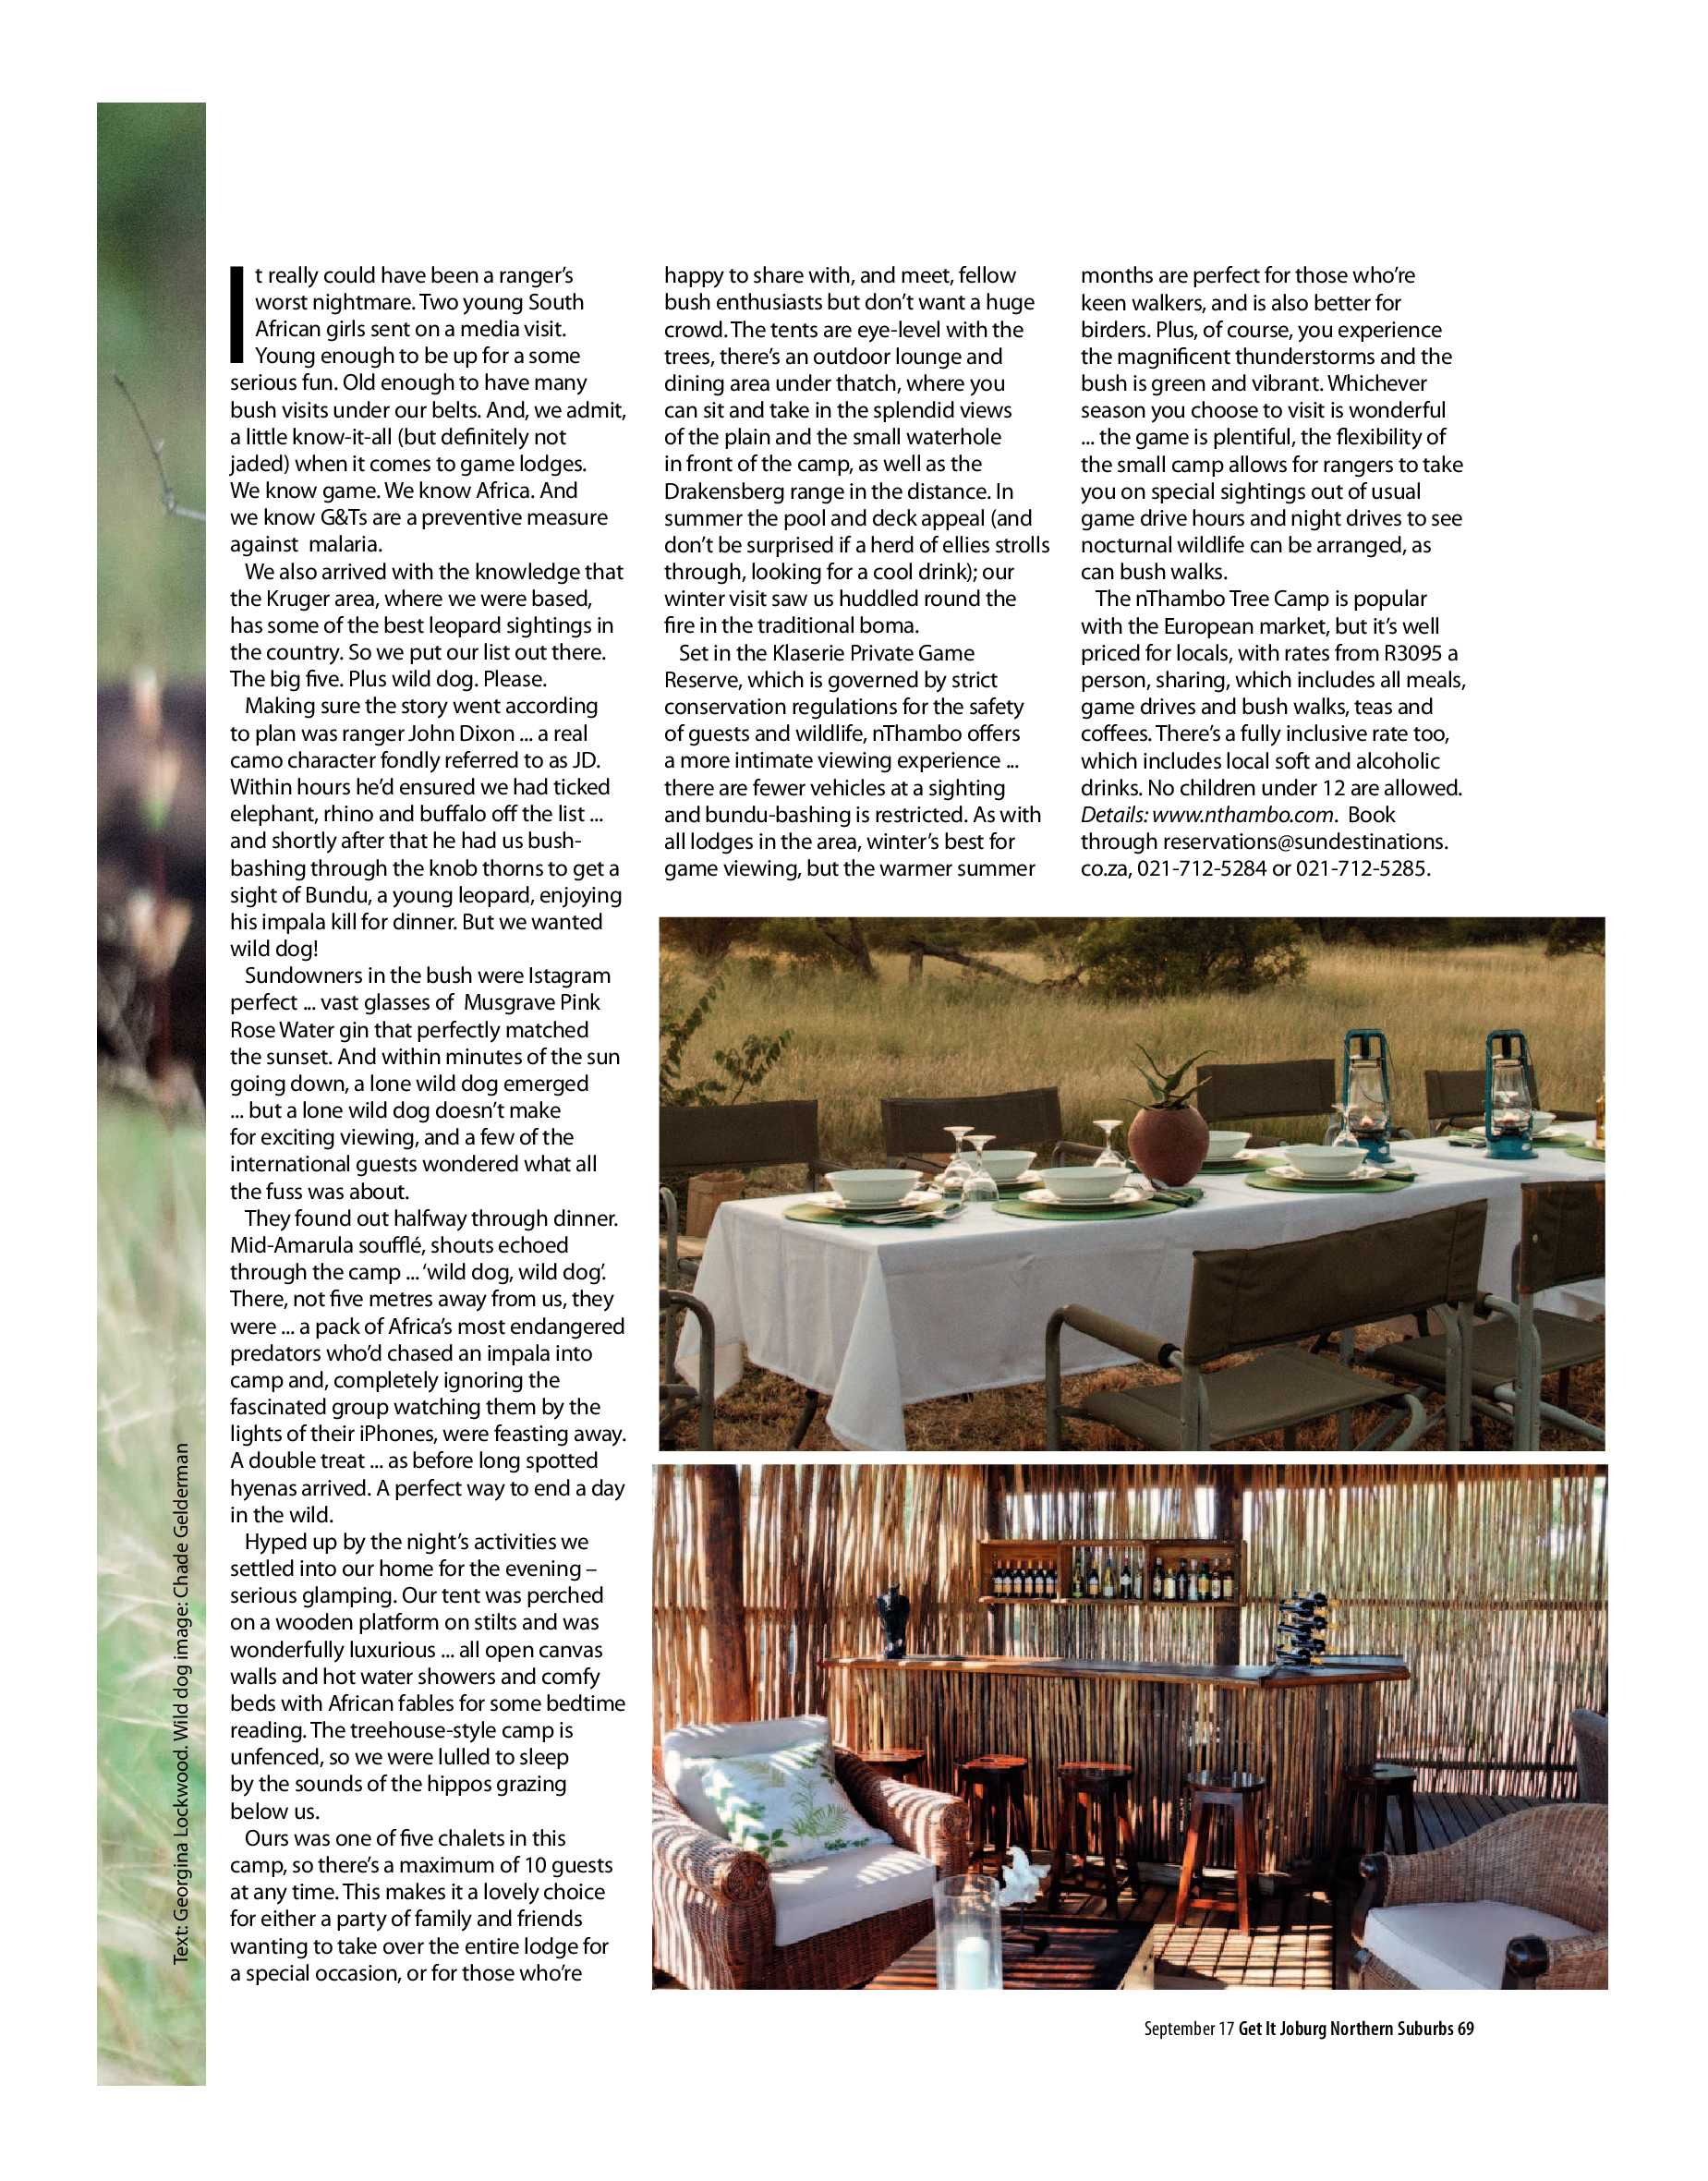 get-joburg-north-september-2017-epapers-page-71